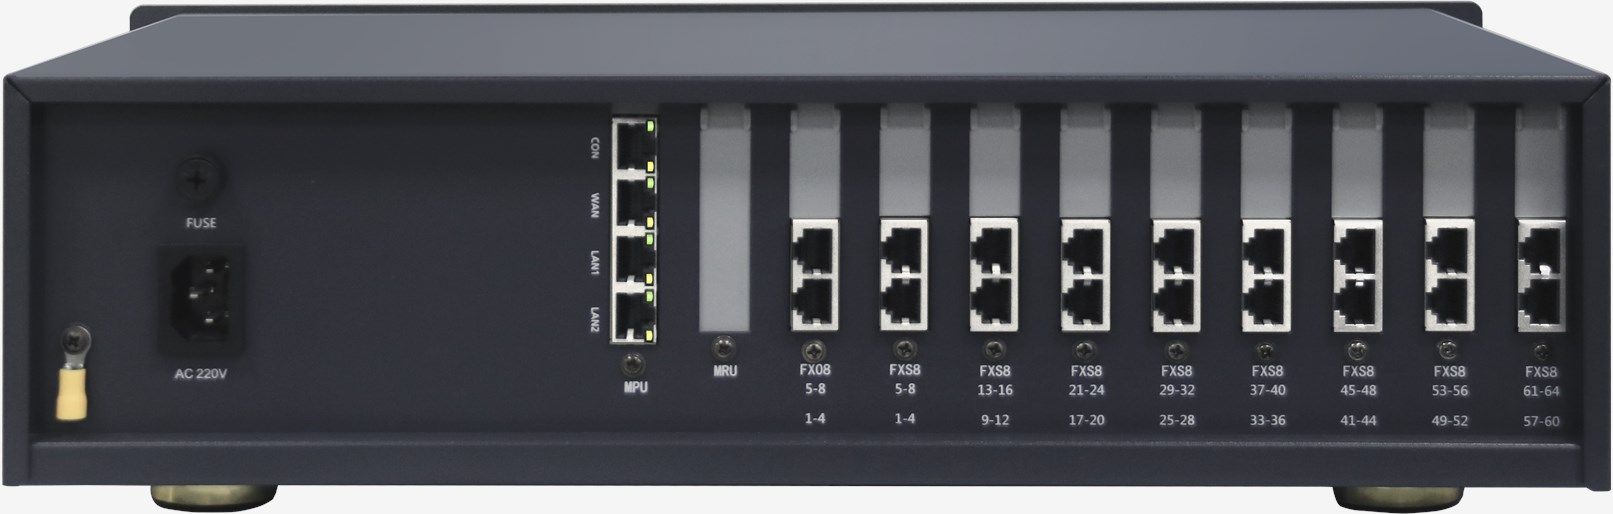 IP Telephone System IAD 100-64S